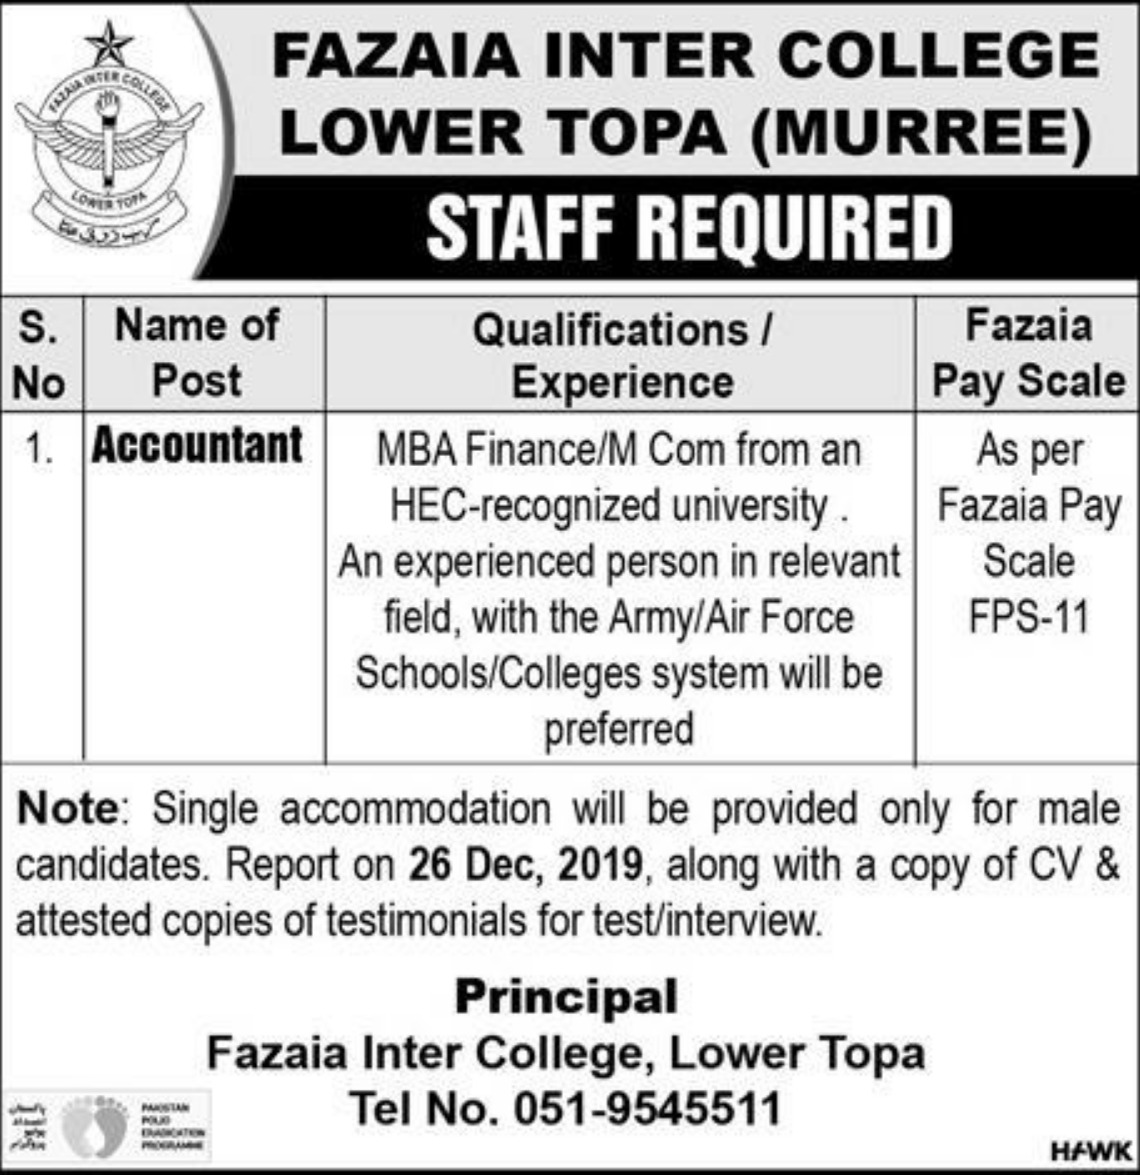 Fazaia Inter College Lower Topa Murree Jobs 2019